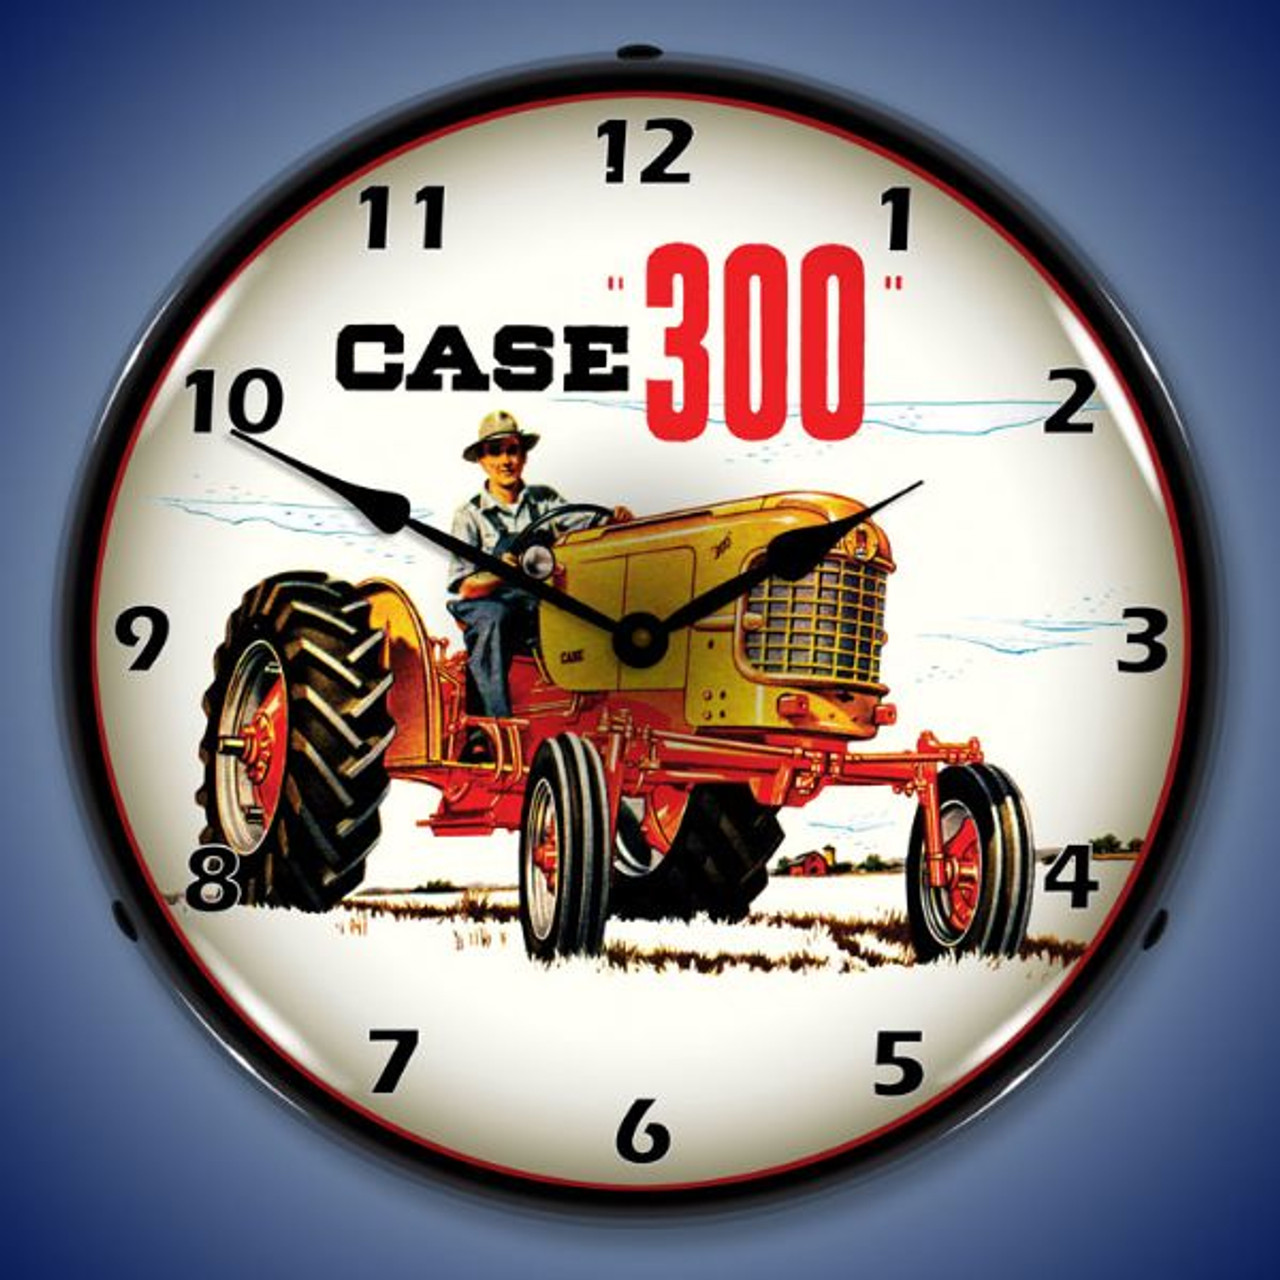 Case 300 Tractor Lighted Wall Clock 14 x 14 Inches